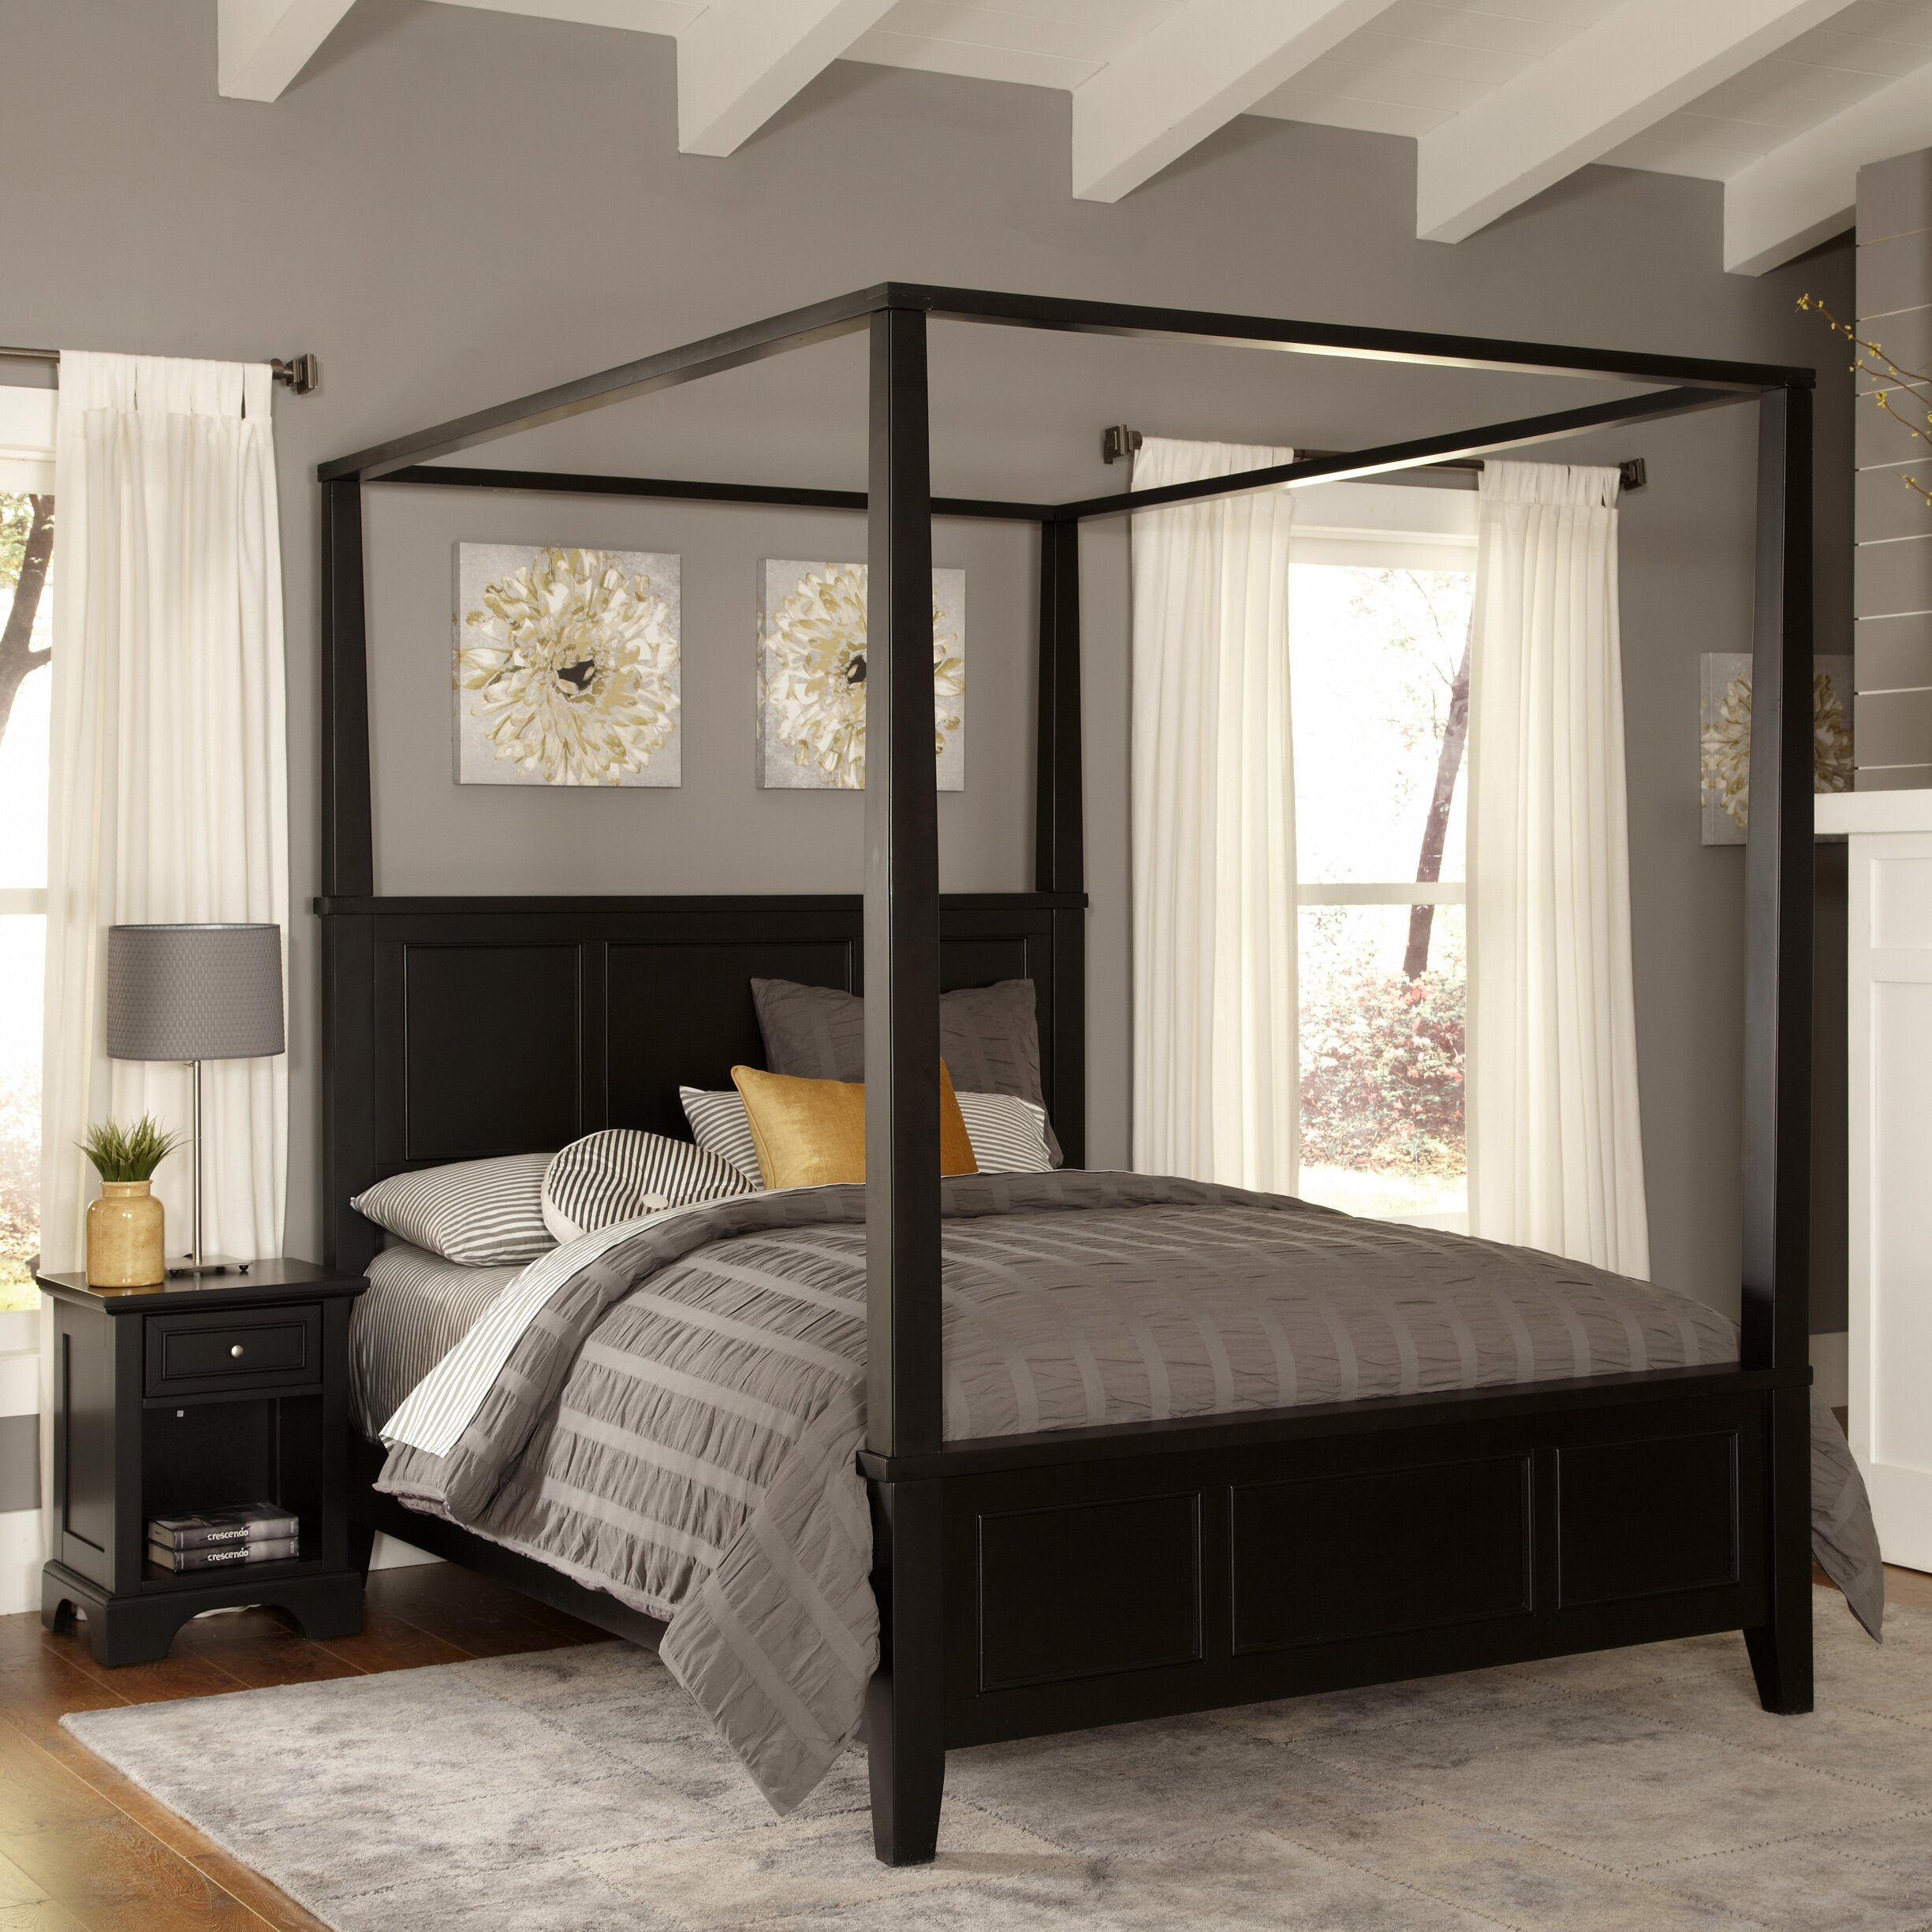 Home styles bedford canopy 2 piece bedroom set reviews Homestyles com